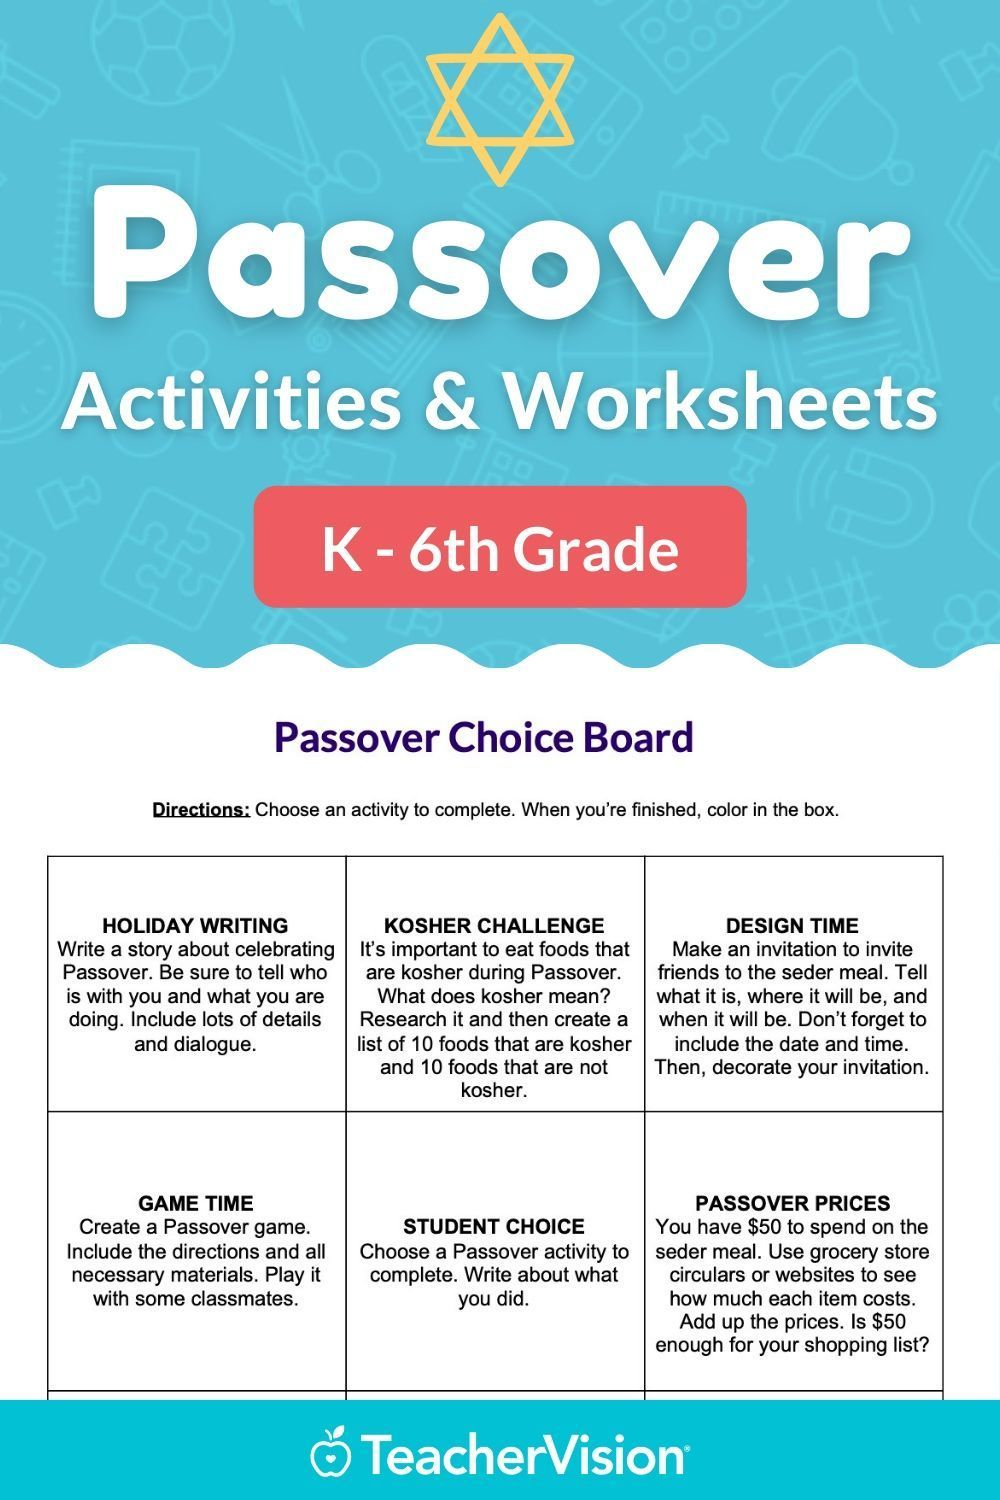 Passover Choice Board And Activities Packet In 2021 Passover Activities Holiday Writing Activities [ 1500 x 1000 Pixel ]